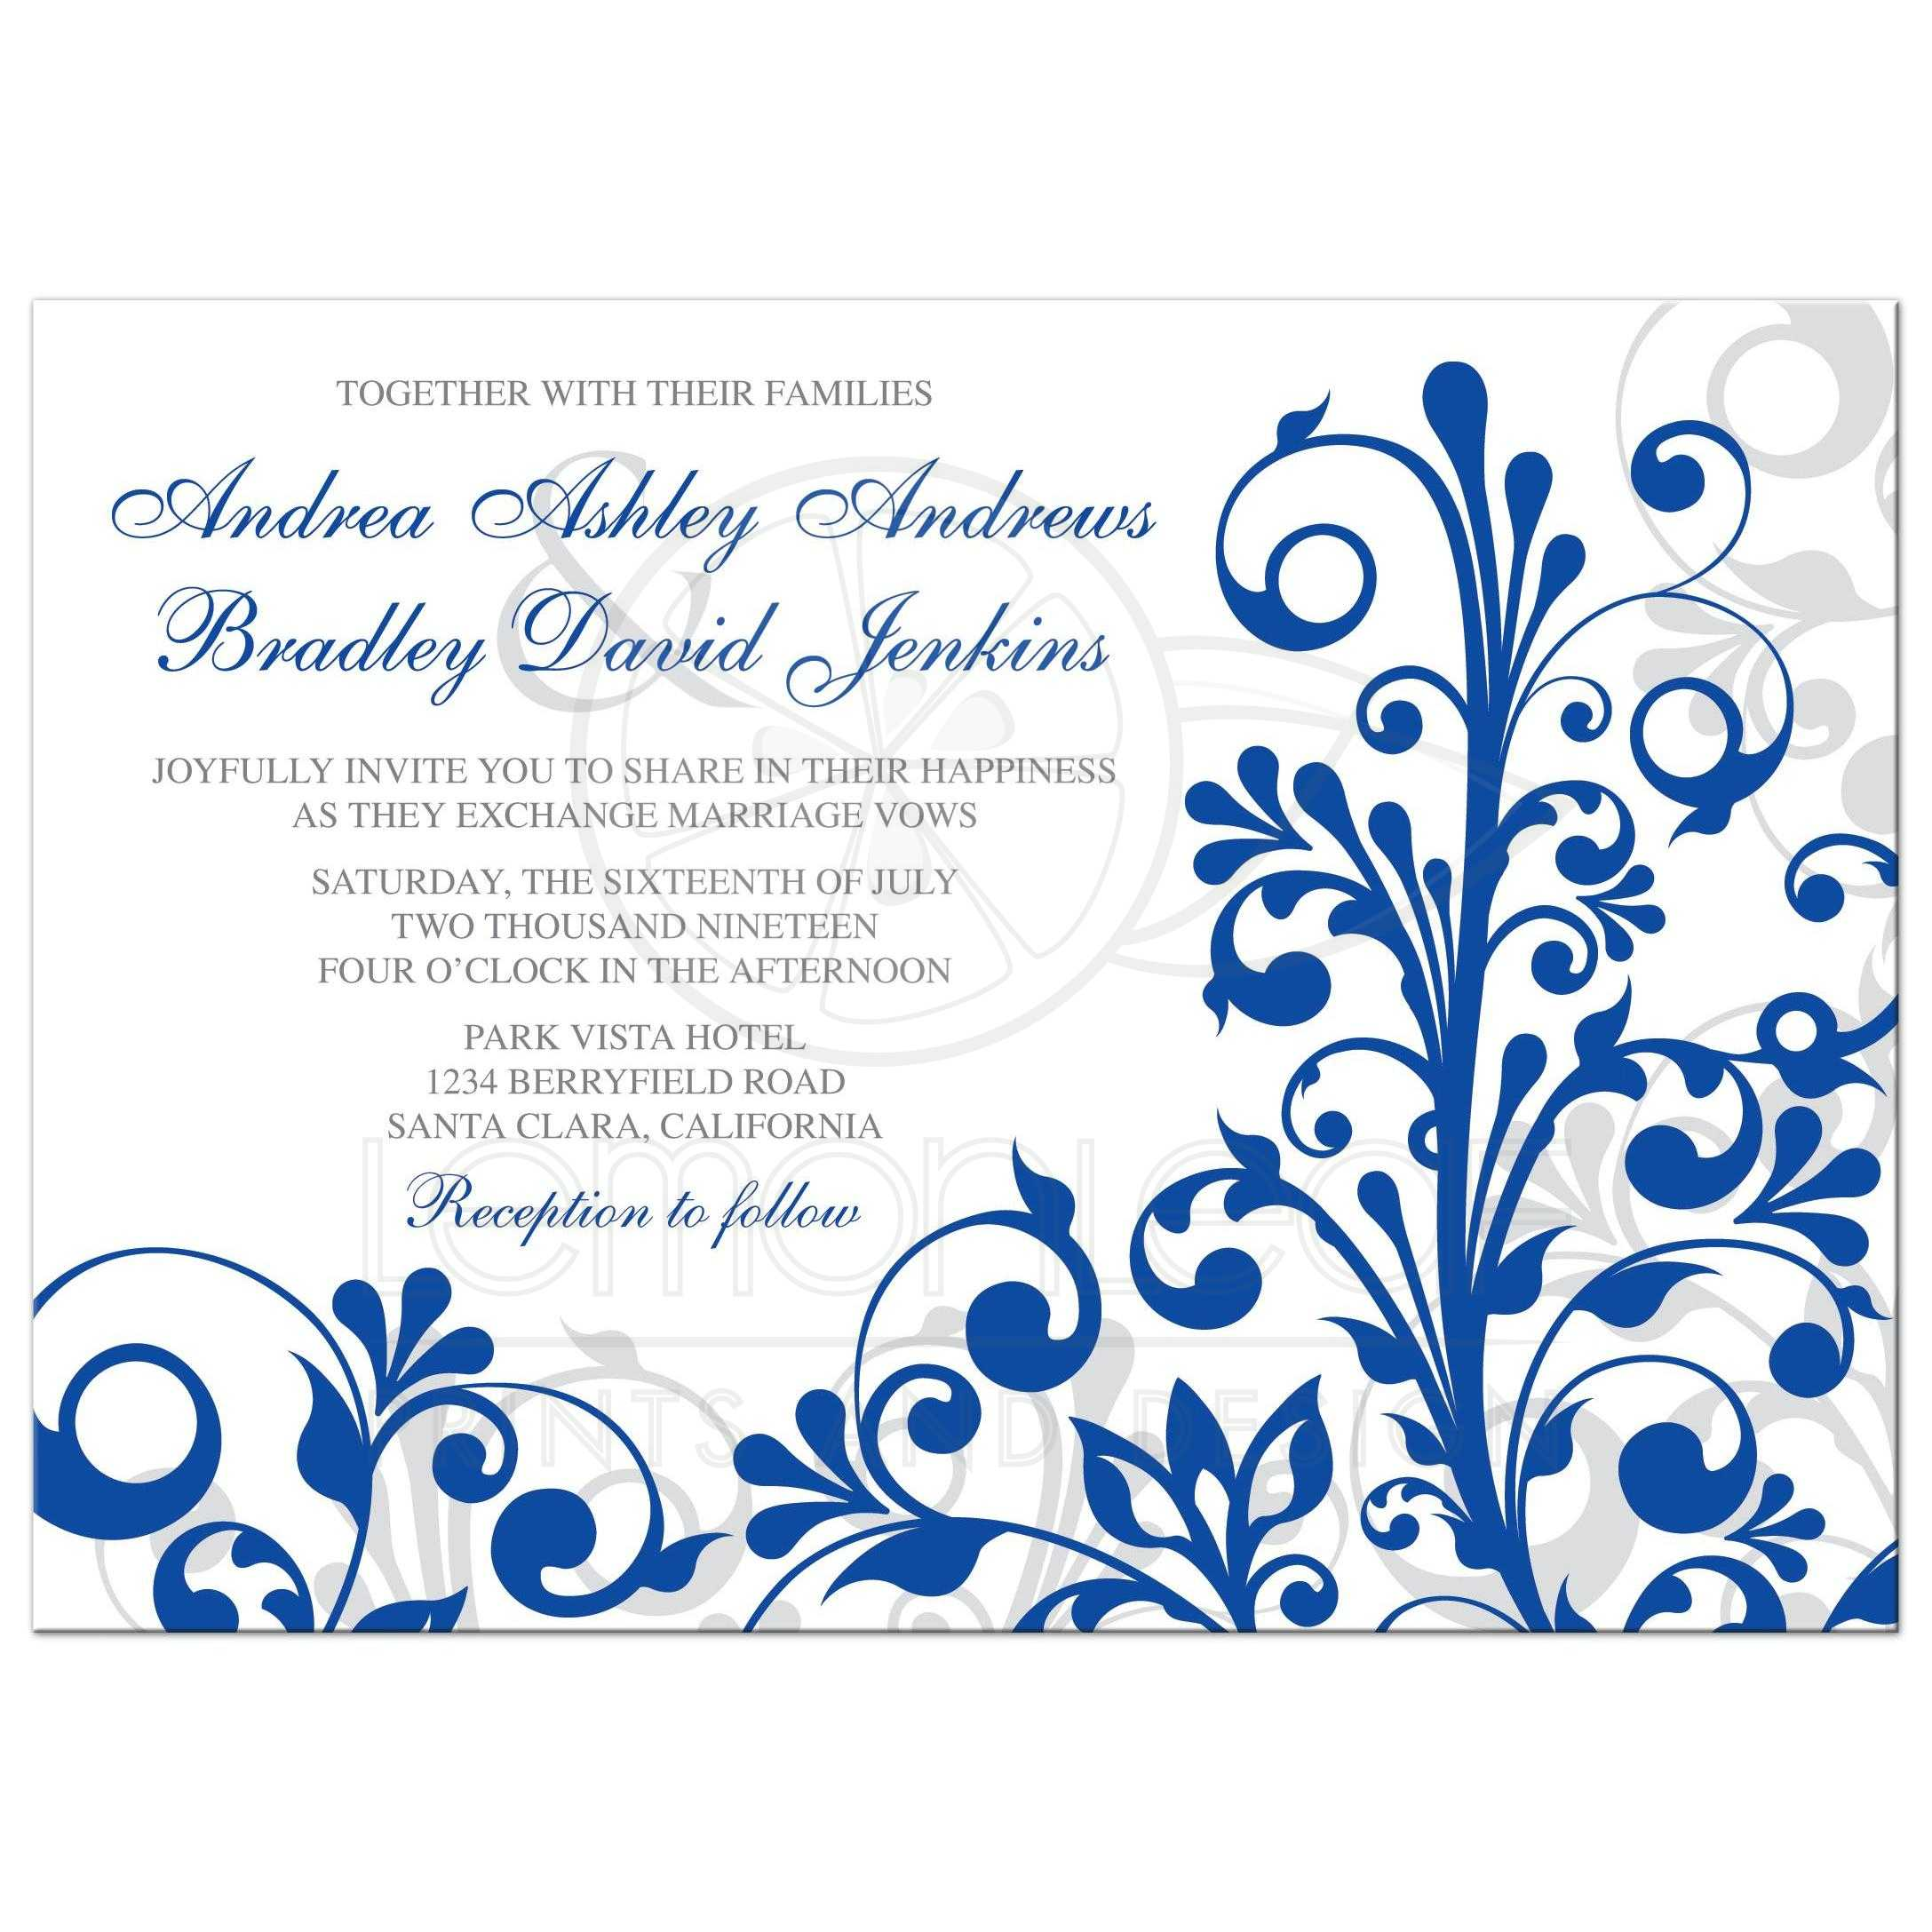 Elegant Royal Blue And White Abstract Floral Wedding Invitation Front: Royal Blue Wedding Invitation Set At Websimilar.org